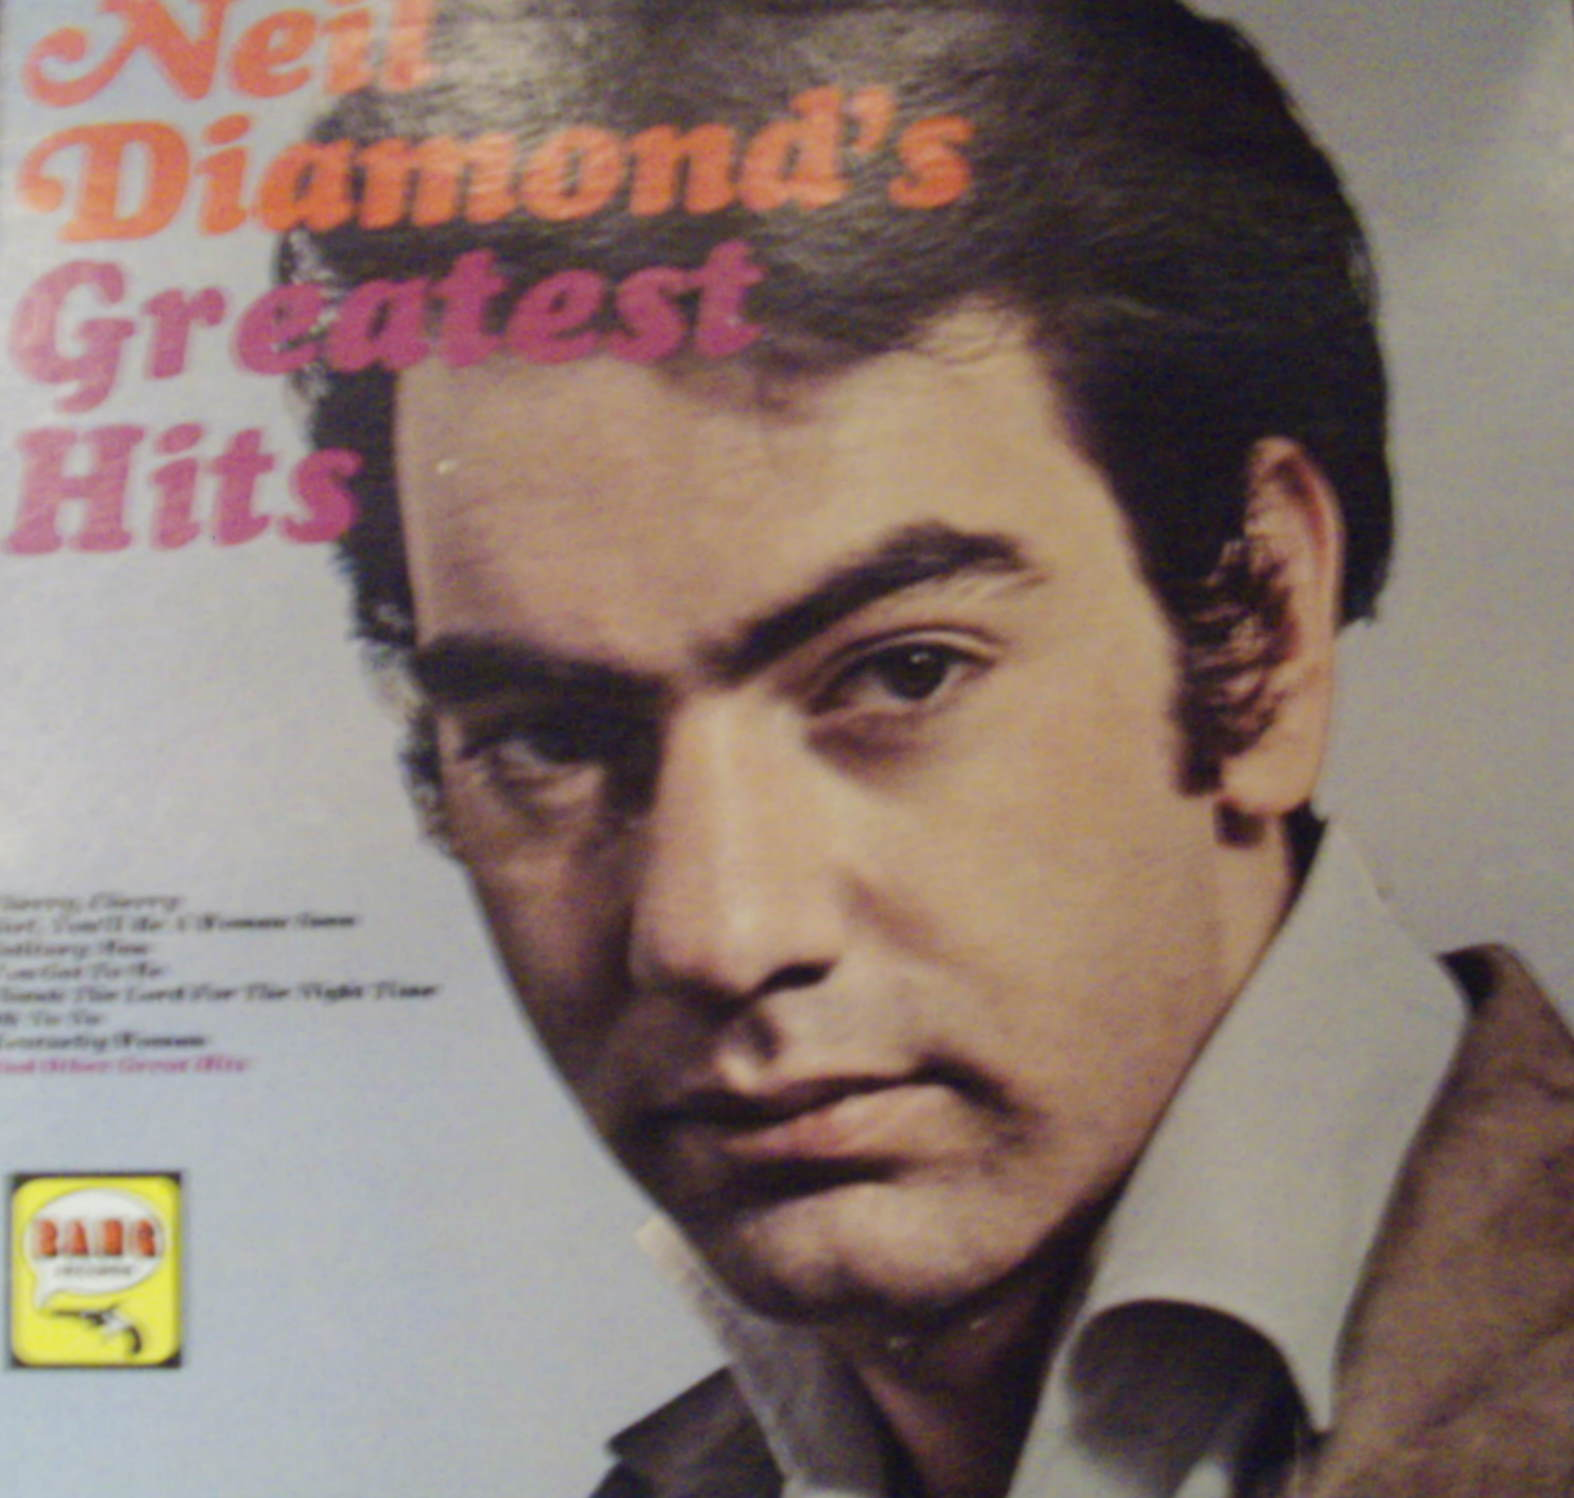 Neil Diamond - Greatest Hits EP